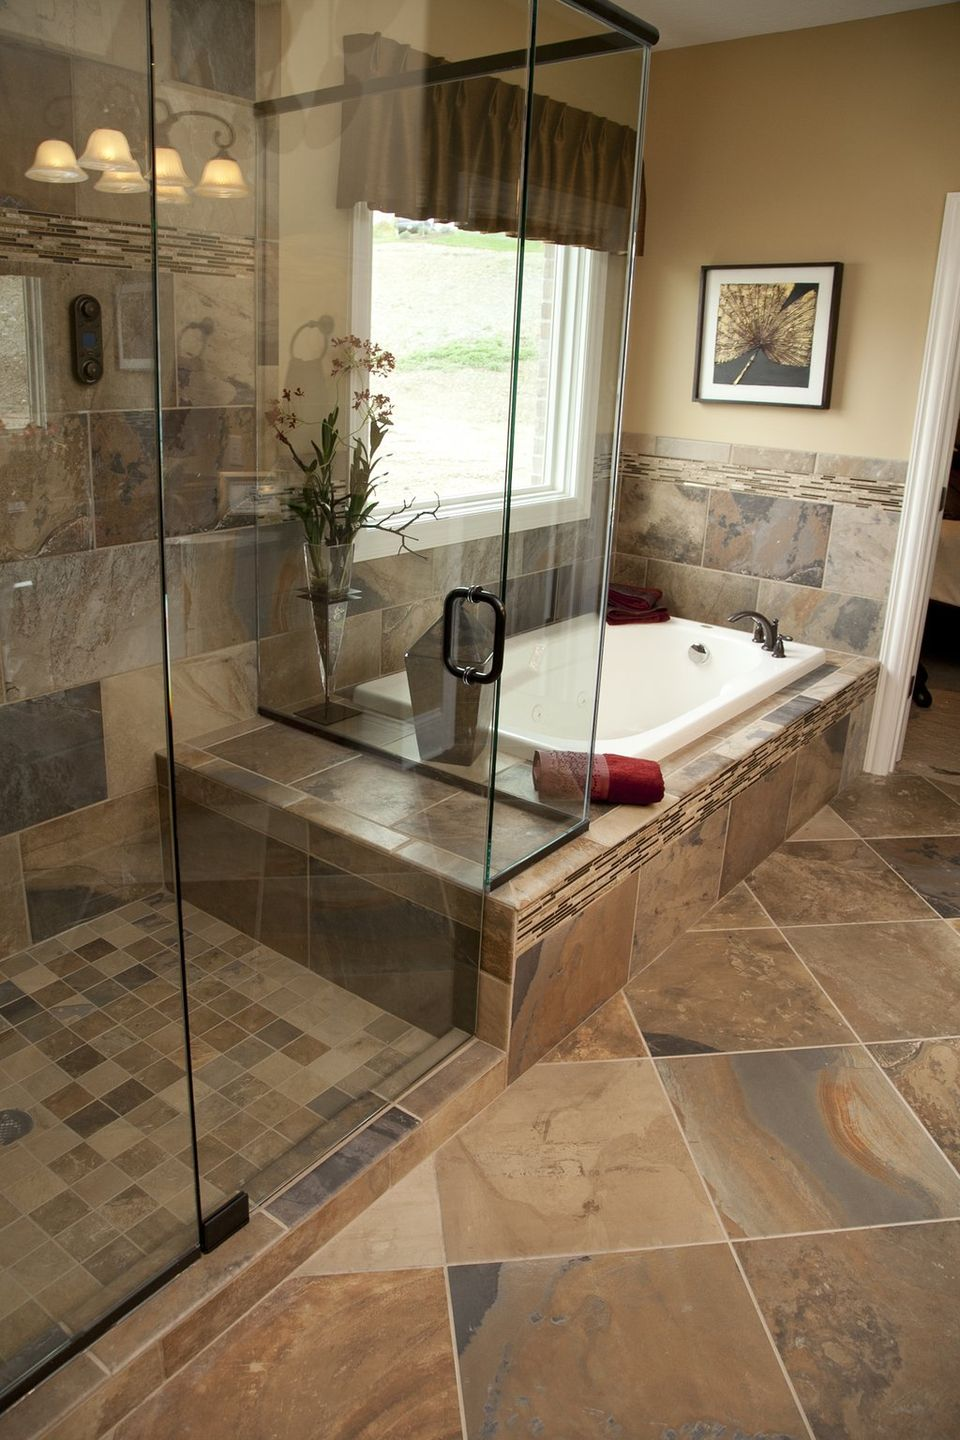 33 stunning pictures and ideas of natural stone bathroom Bathroom tiles ideas for small bathrooms